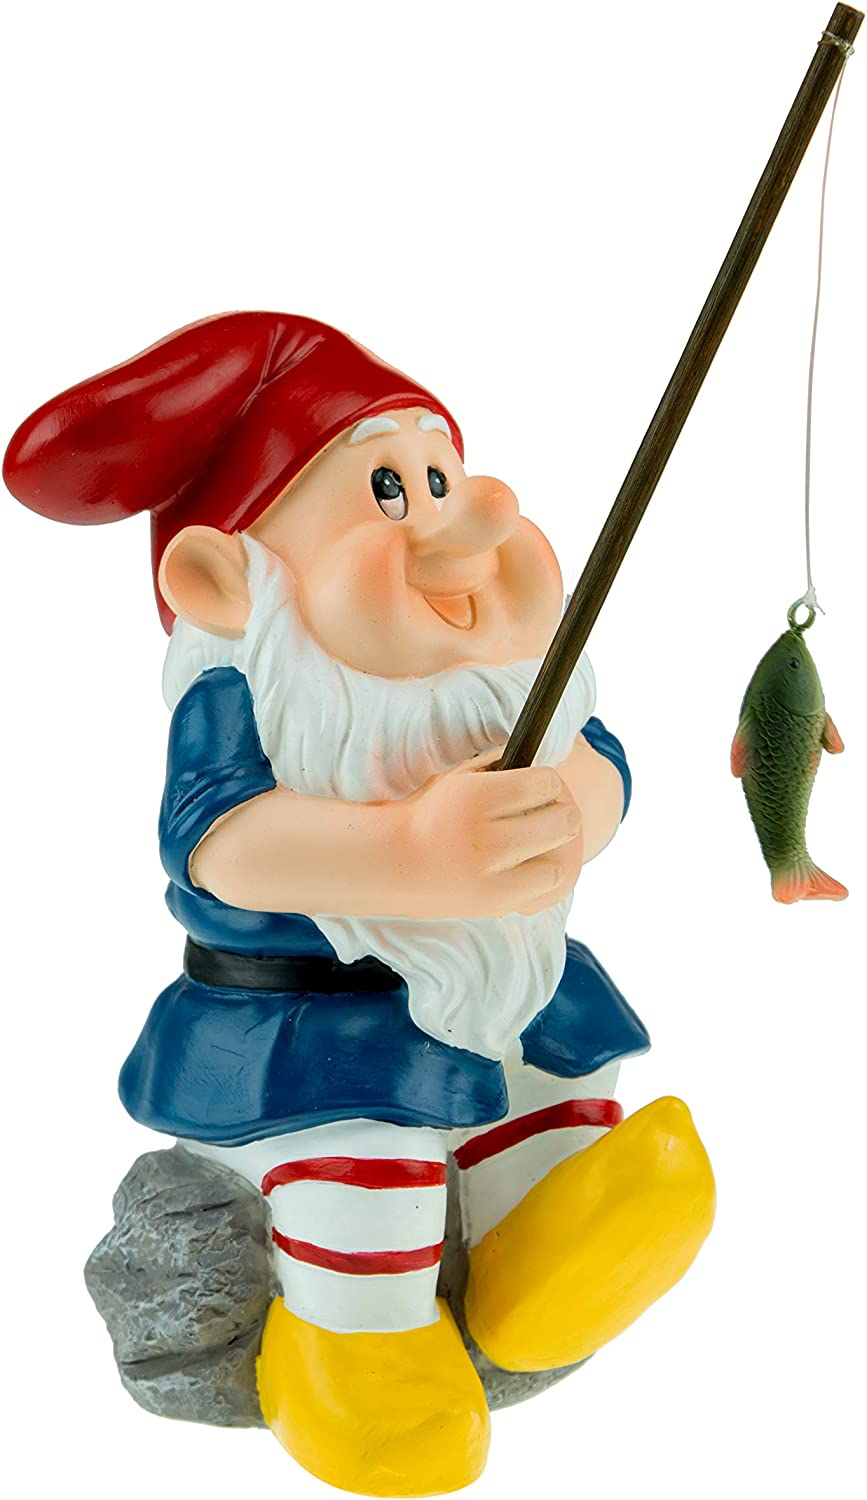 Garden Gnome Figurine Polyresin Statue for Lawn Ornaments, Indoor or Outdoor Decoration, 8 Inches Tall, Fisherman